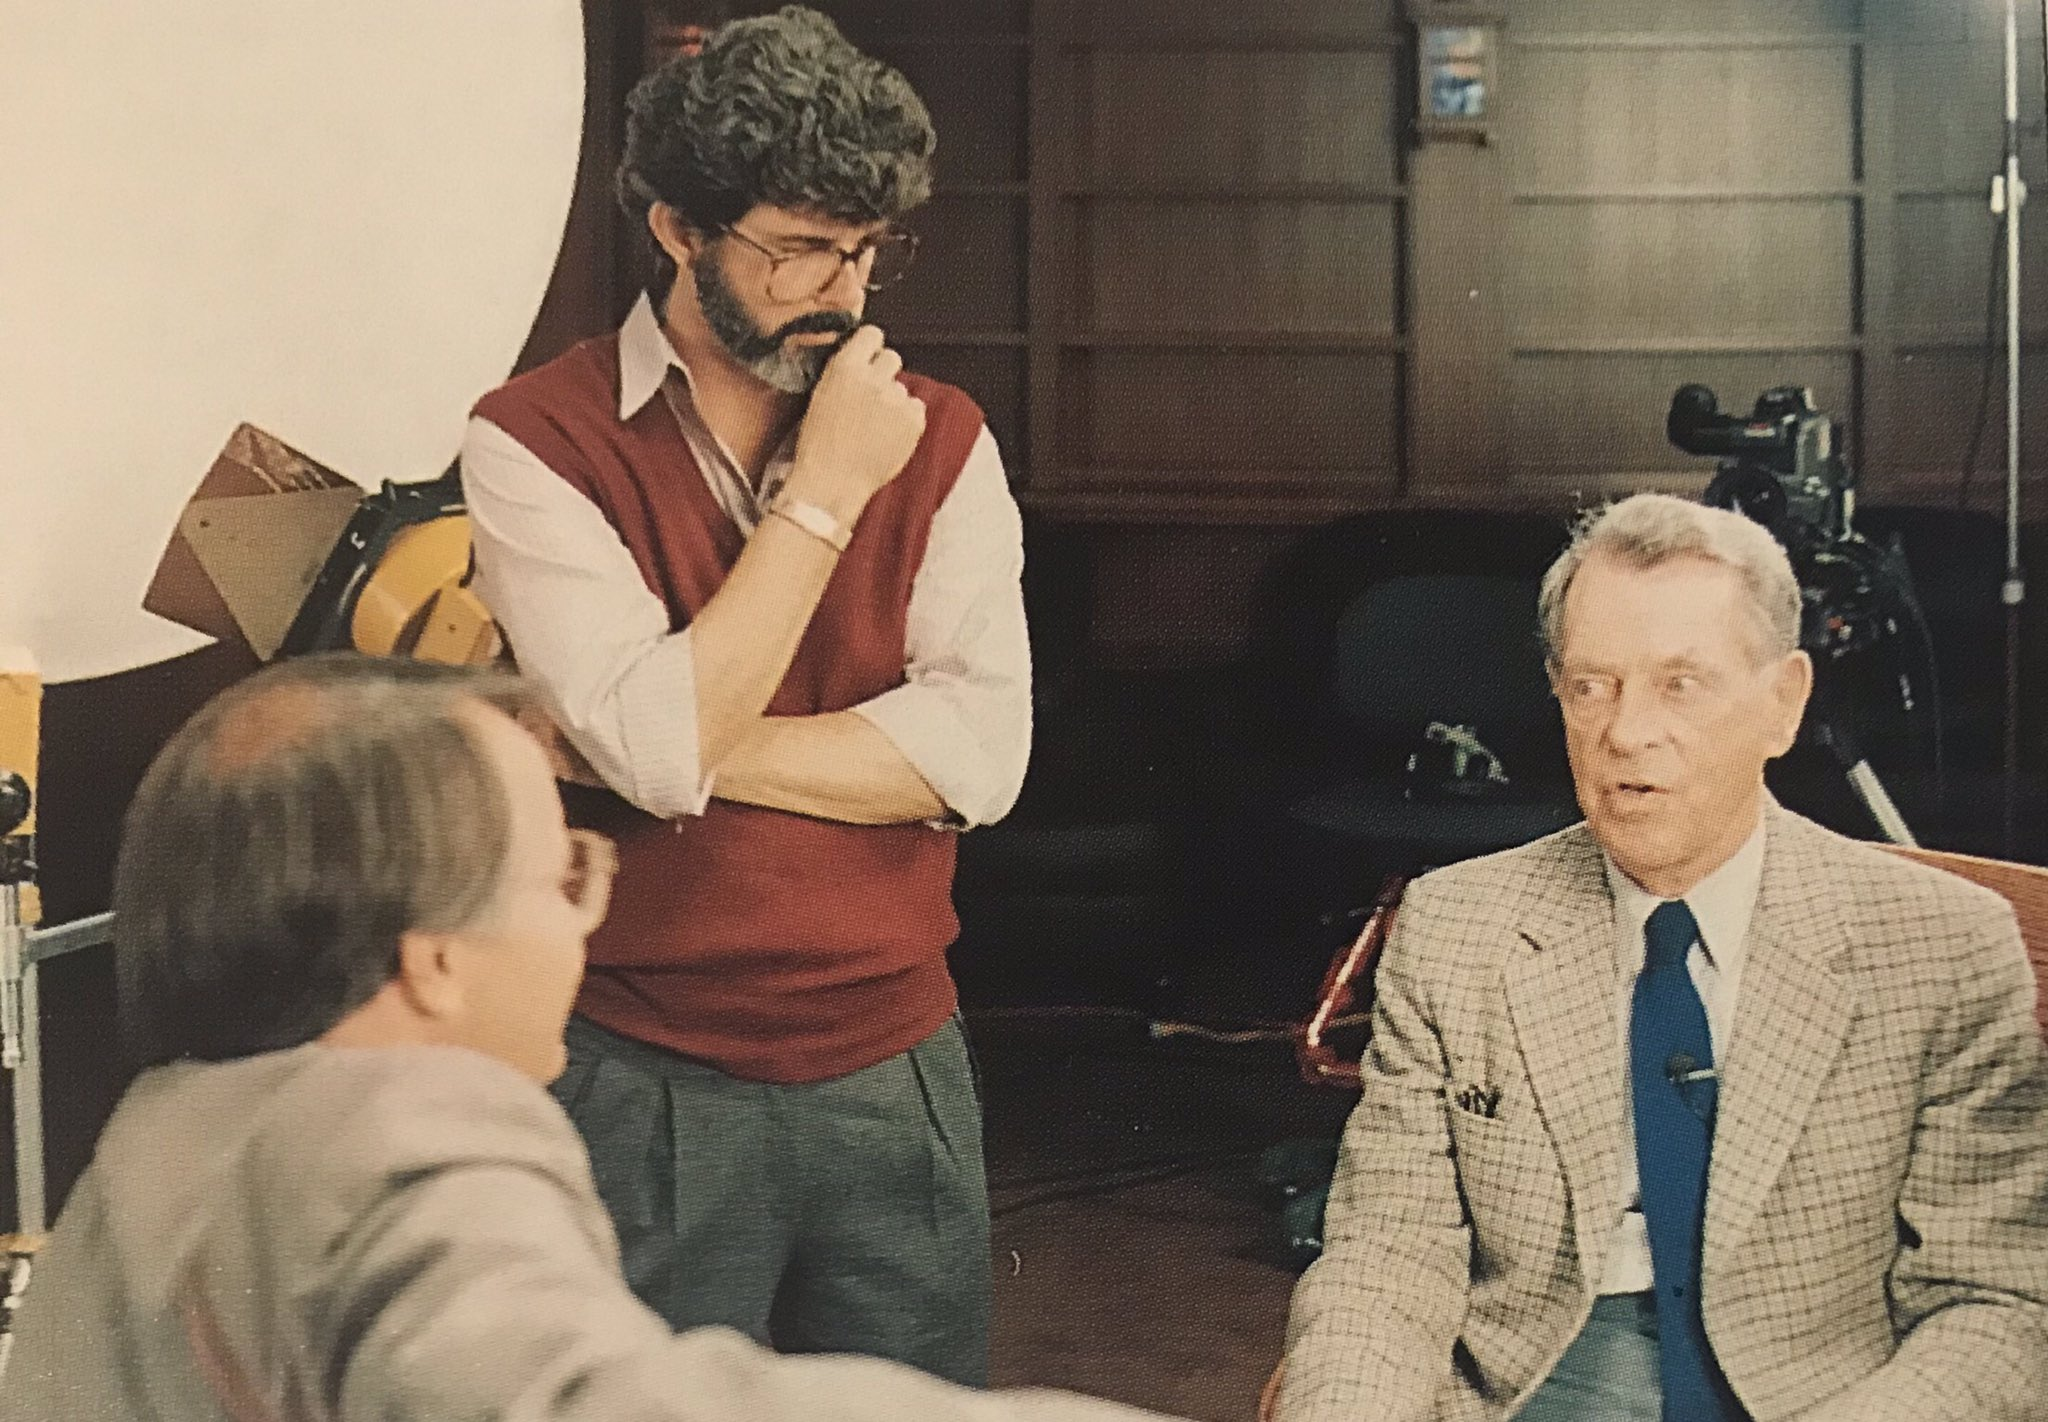 """wizard stories on Twitter: """"1985 - Joseph Campbell, George Lucas and Bill Moyers at Skywalker Ranch filming Campbell's interview series """"The Power of Myth""""… https://t.co/UV3fAVLigx"""""""